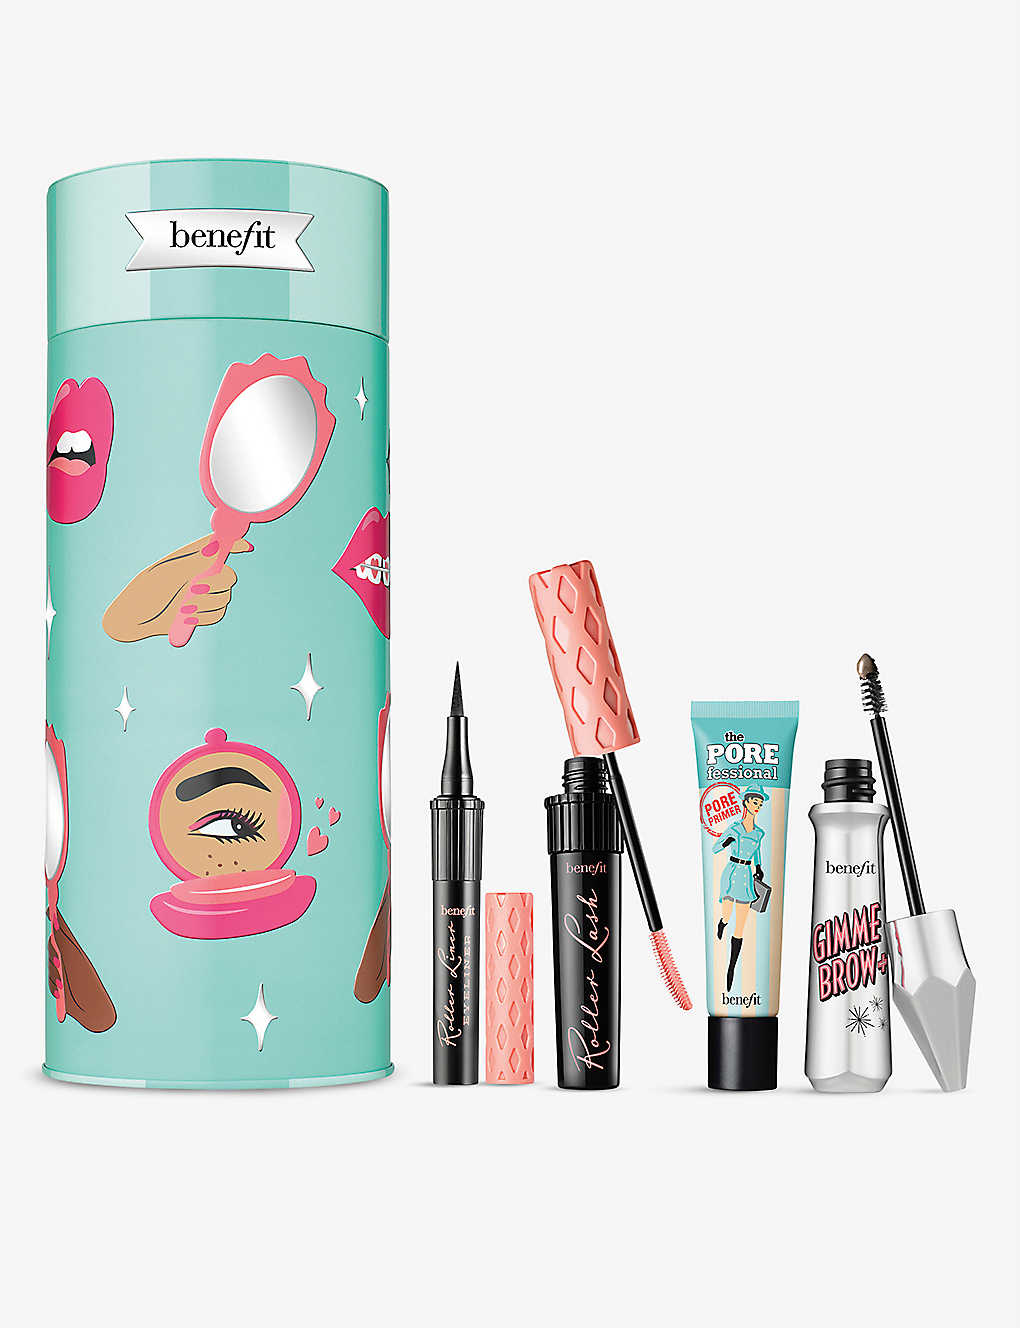 BENEFIT: Party Curl gift set